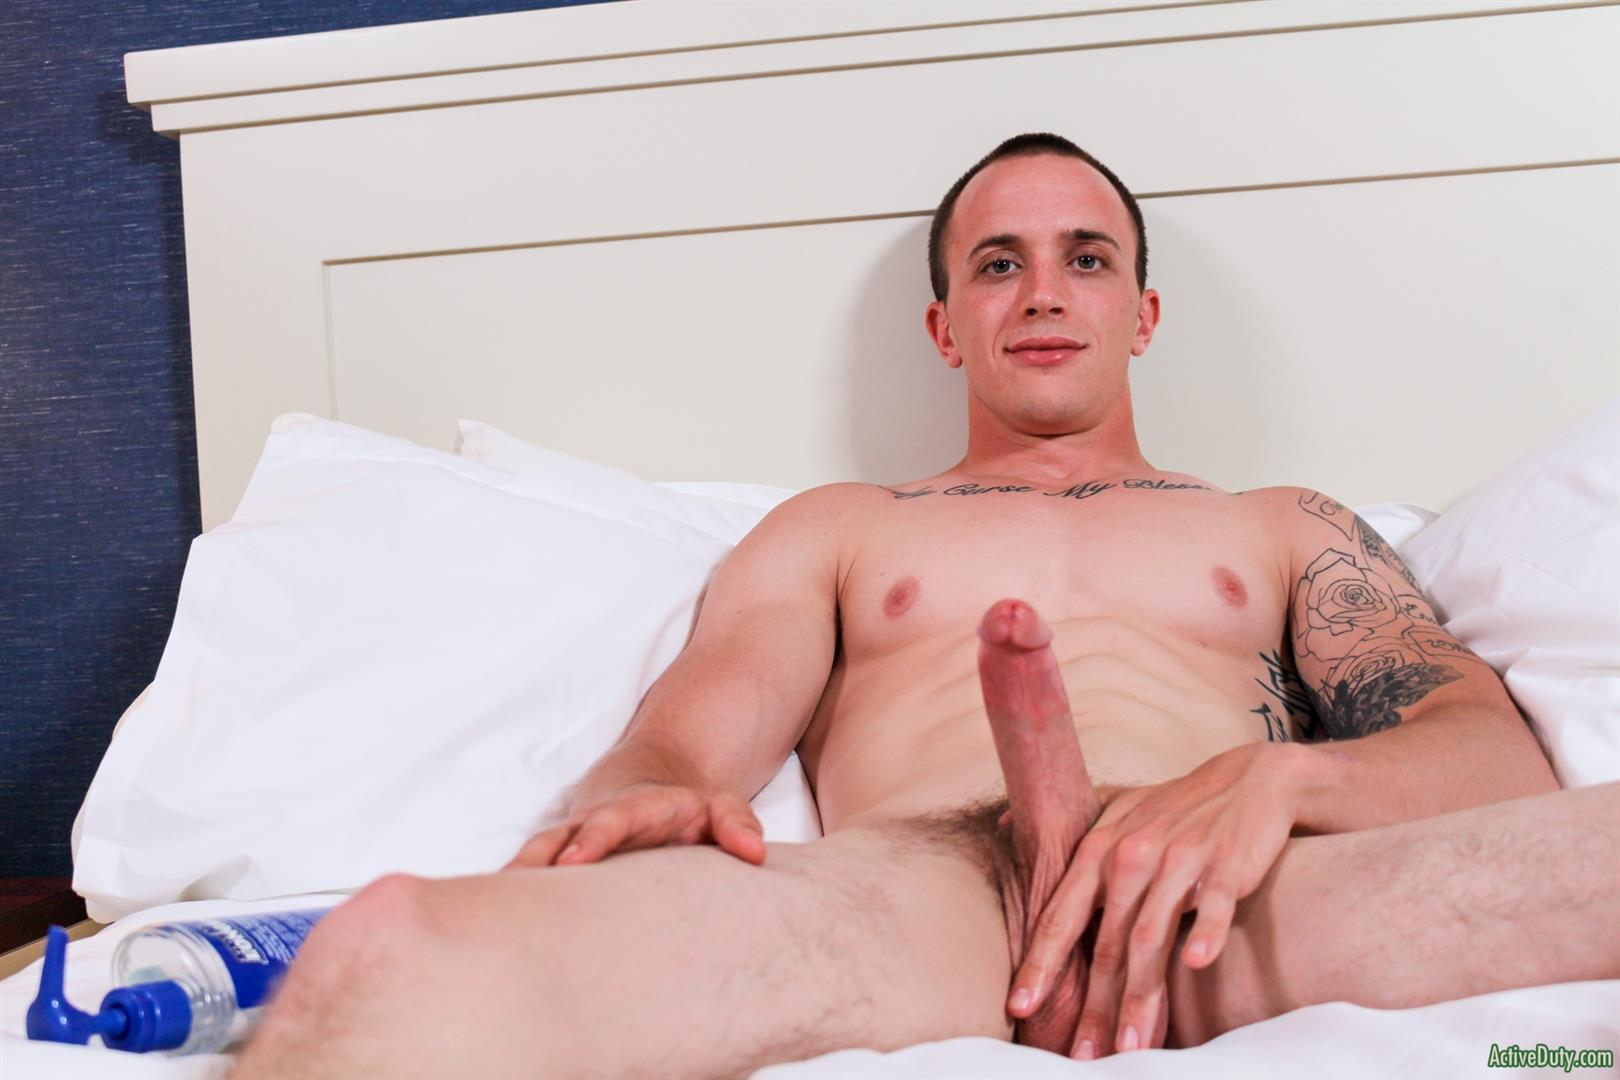 Active-Duty-James-Straight-Army-Guy-Jerking-Off-His-Big-Cock-Amateur-Gay-Porn-10 Tatted Straight Army Hunk Auditions For Gay Porn and Shoots A Big Load